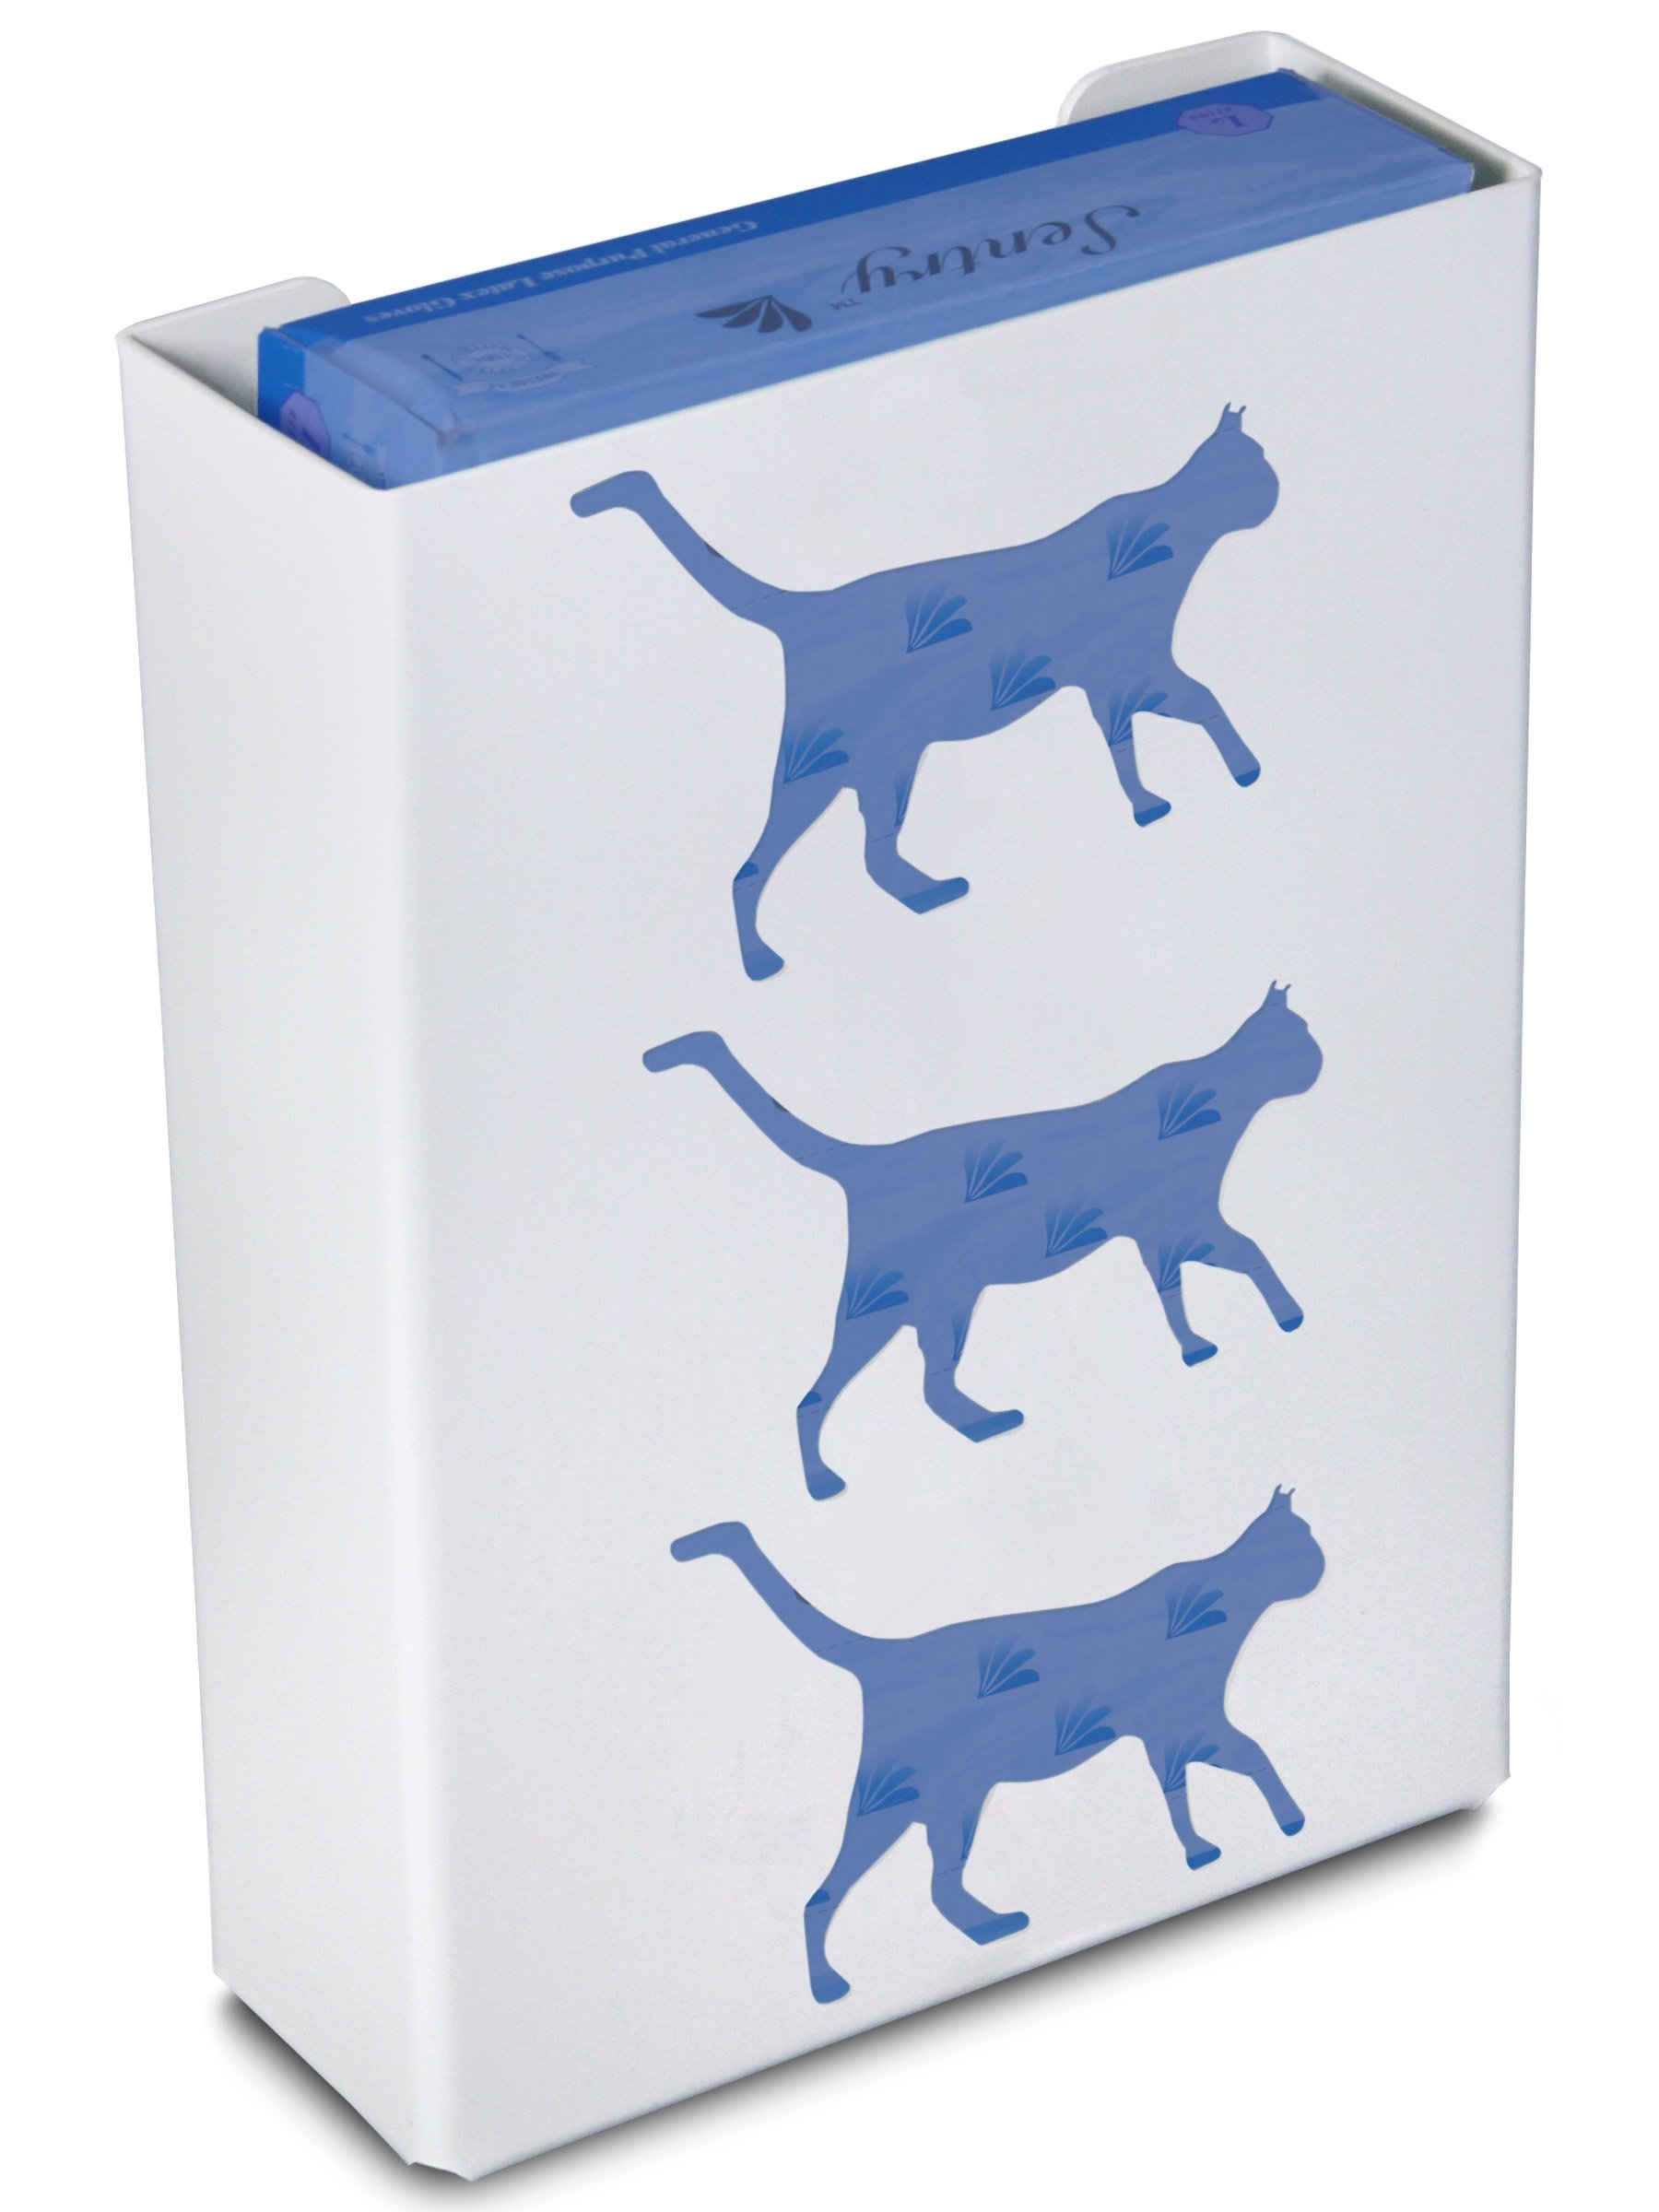 TrippNT 50853 Priced Right Triple Glove Box Holder with Cat, 11'' Width x 15'' Height x 4'' Depth